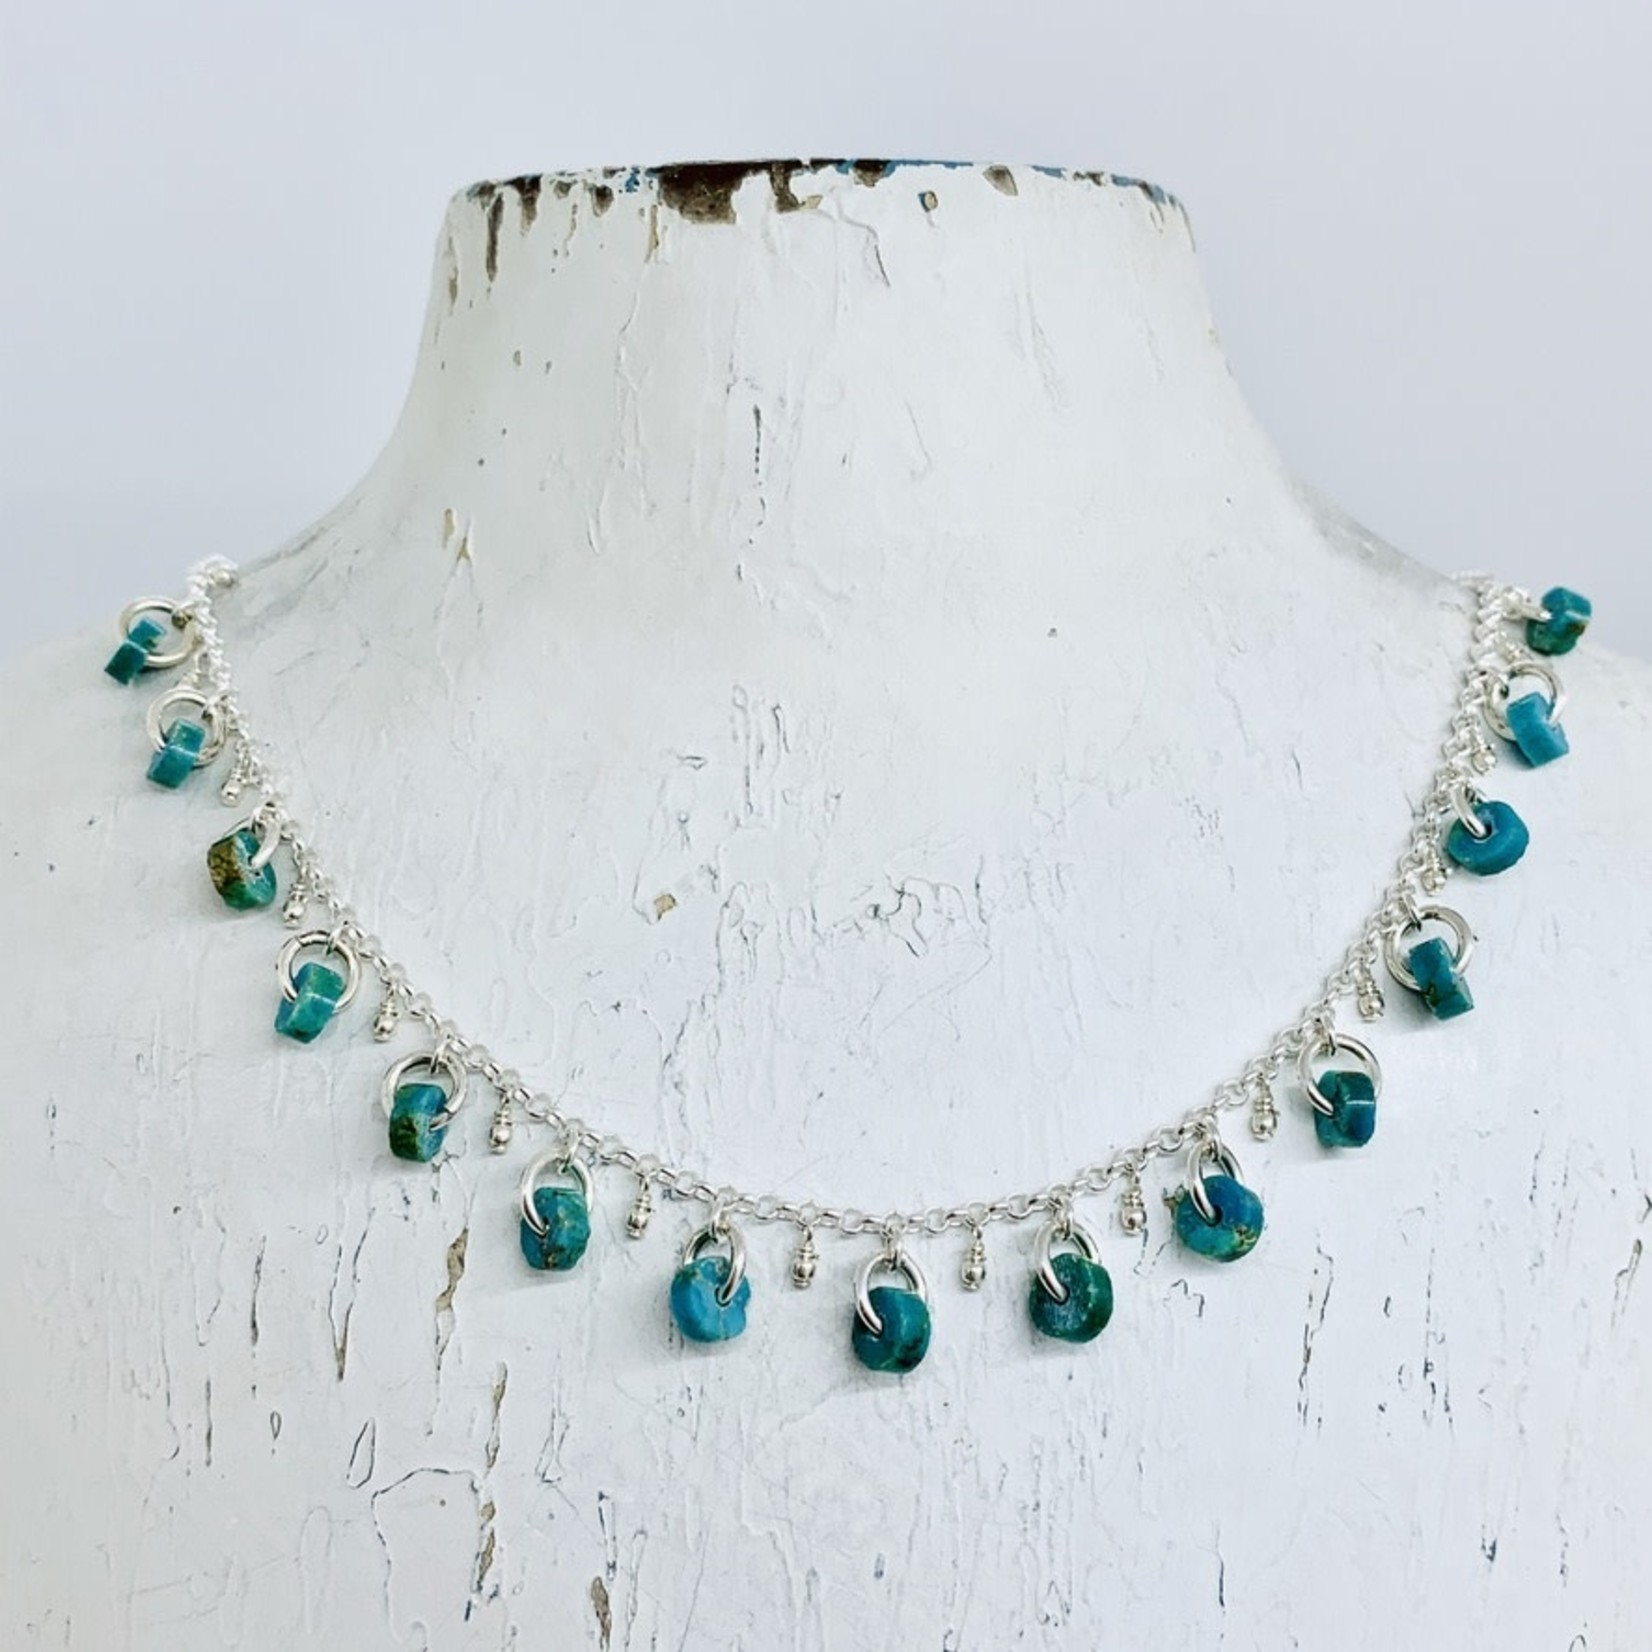 Handmade necklace with turquoise discs